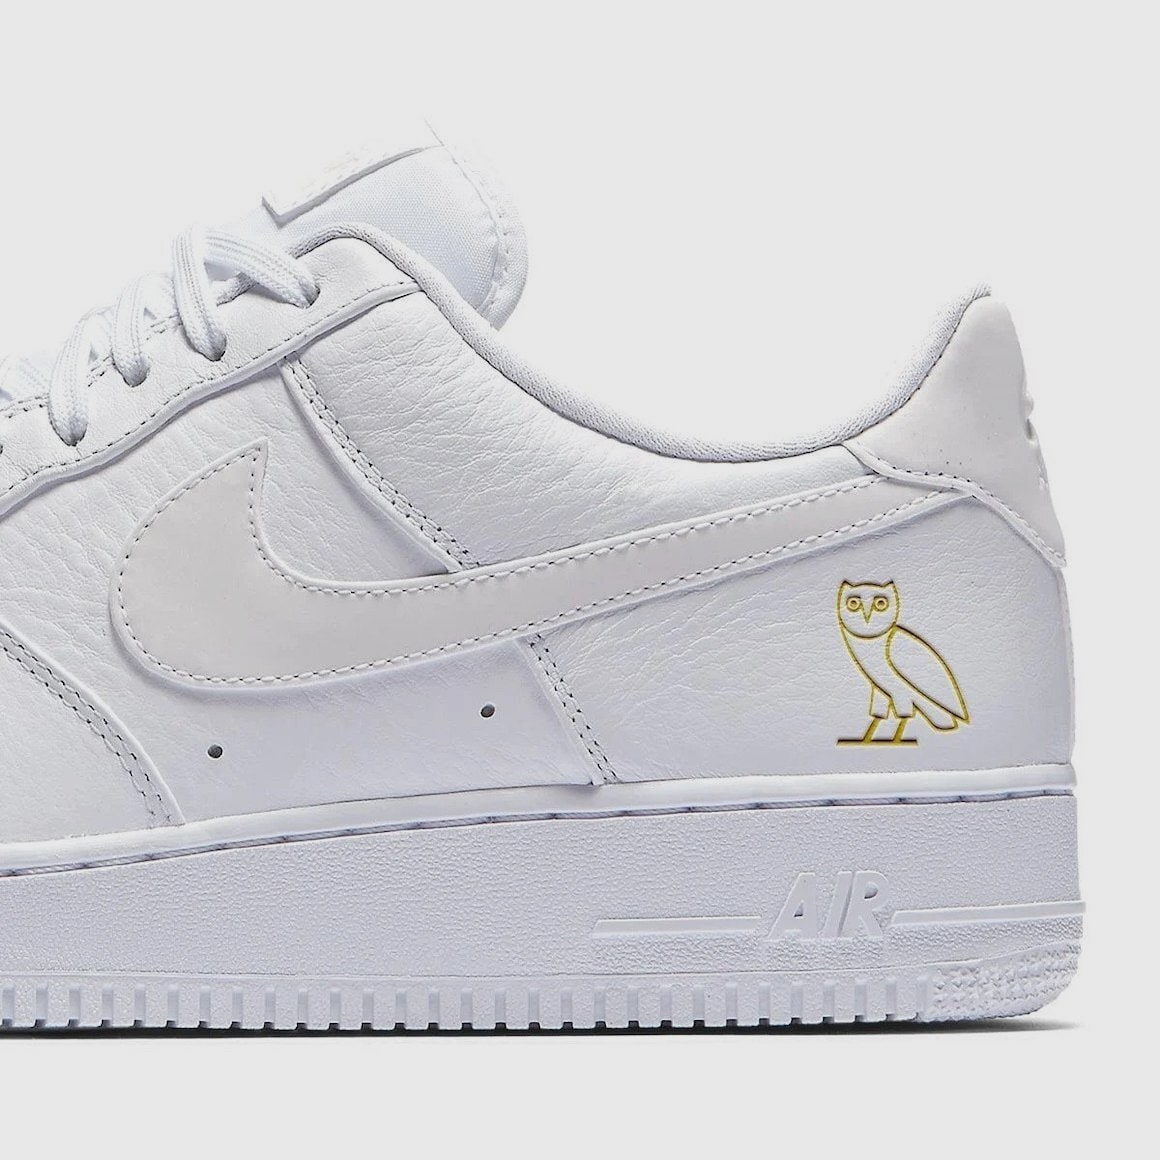 Drake x Nike Air Force 1 Triple White dettaglio logo OVO